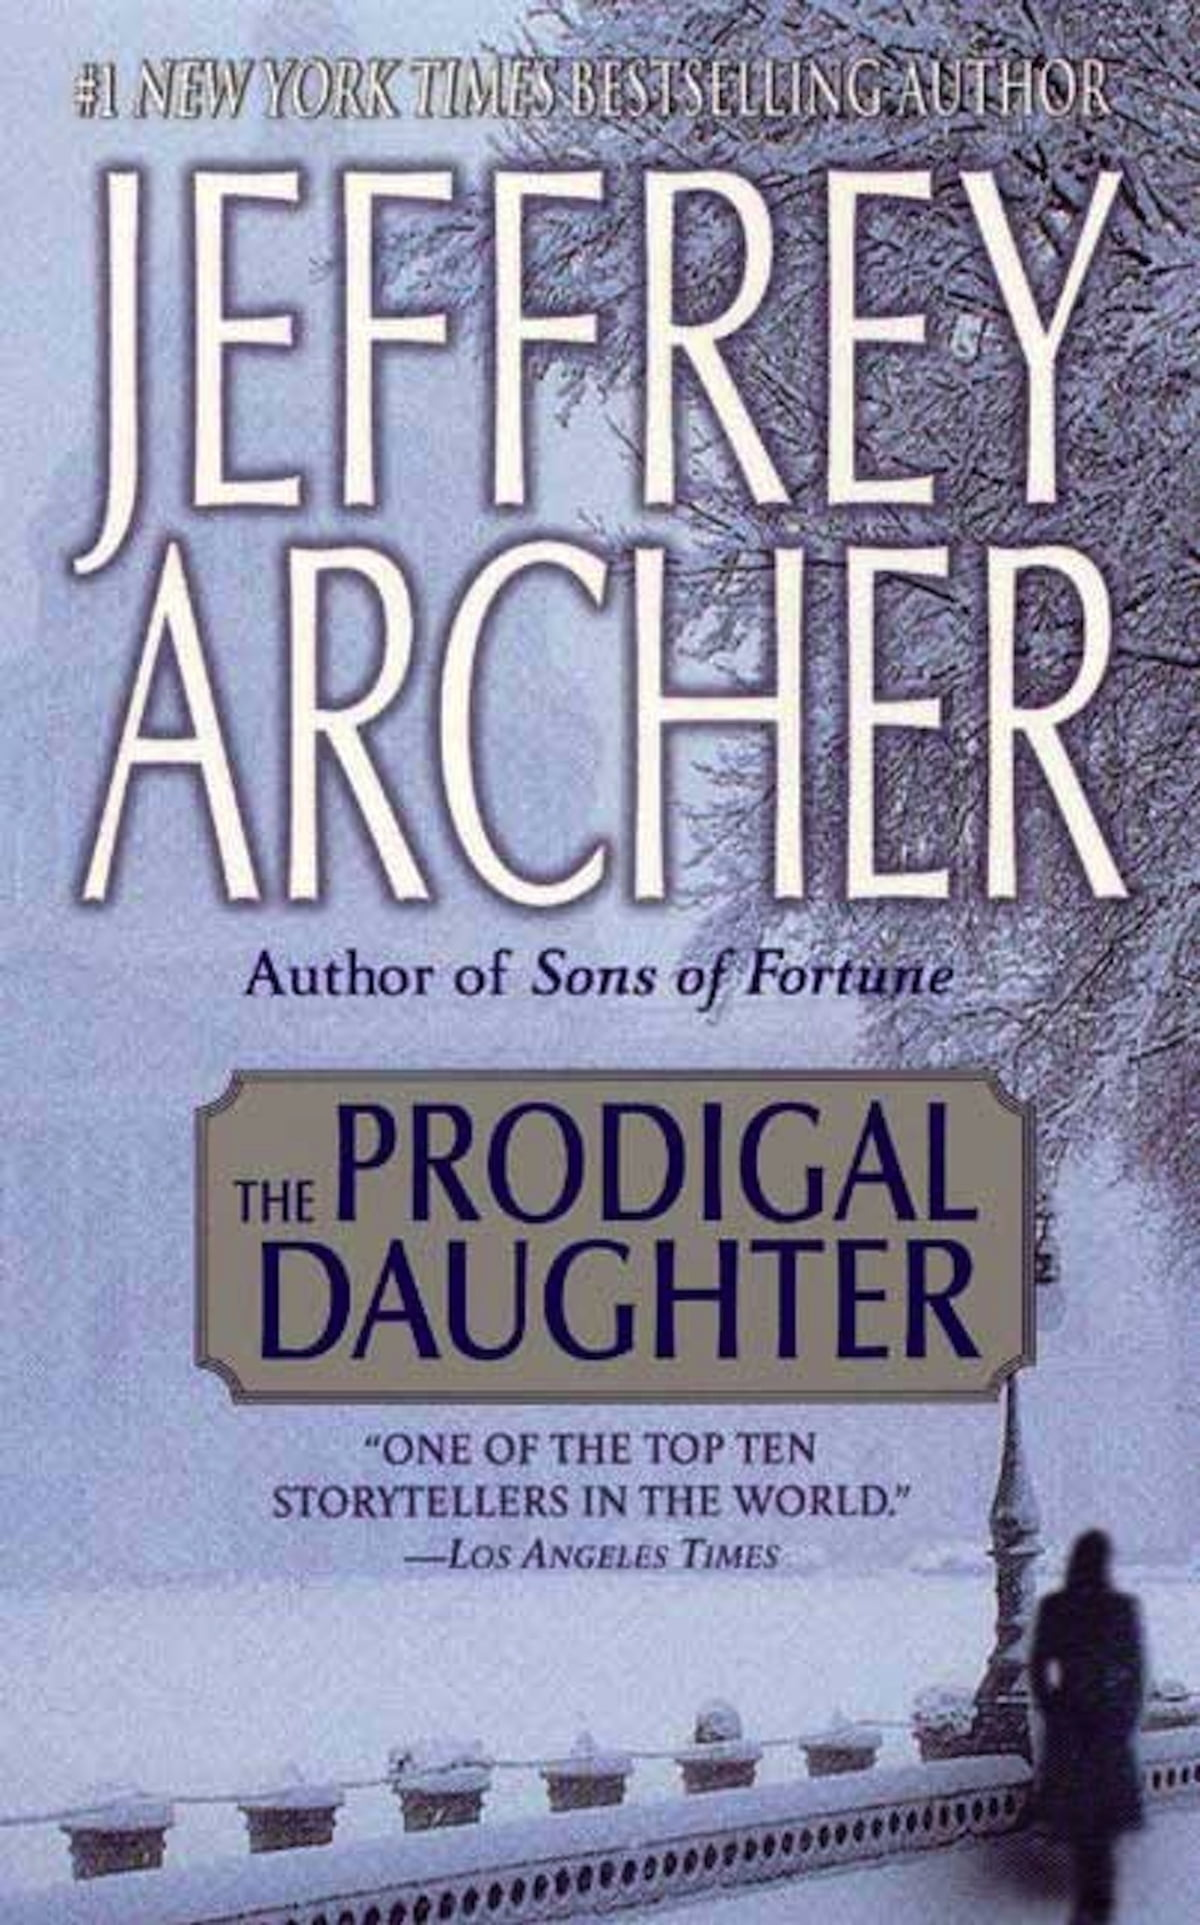 Cometh the hour ebook by jeffrey archer 9781466867505 rakuten kobo the prodigal daughter ebook by jeffrey archer fandeluxe Ebook collections